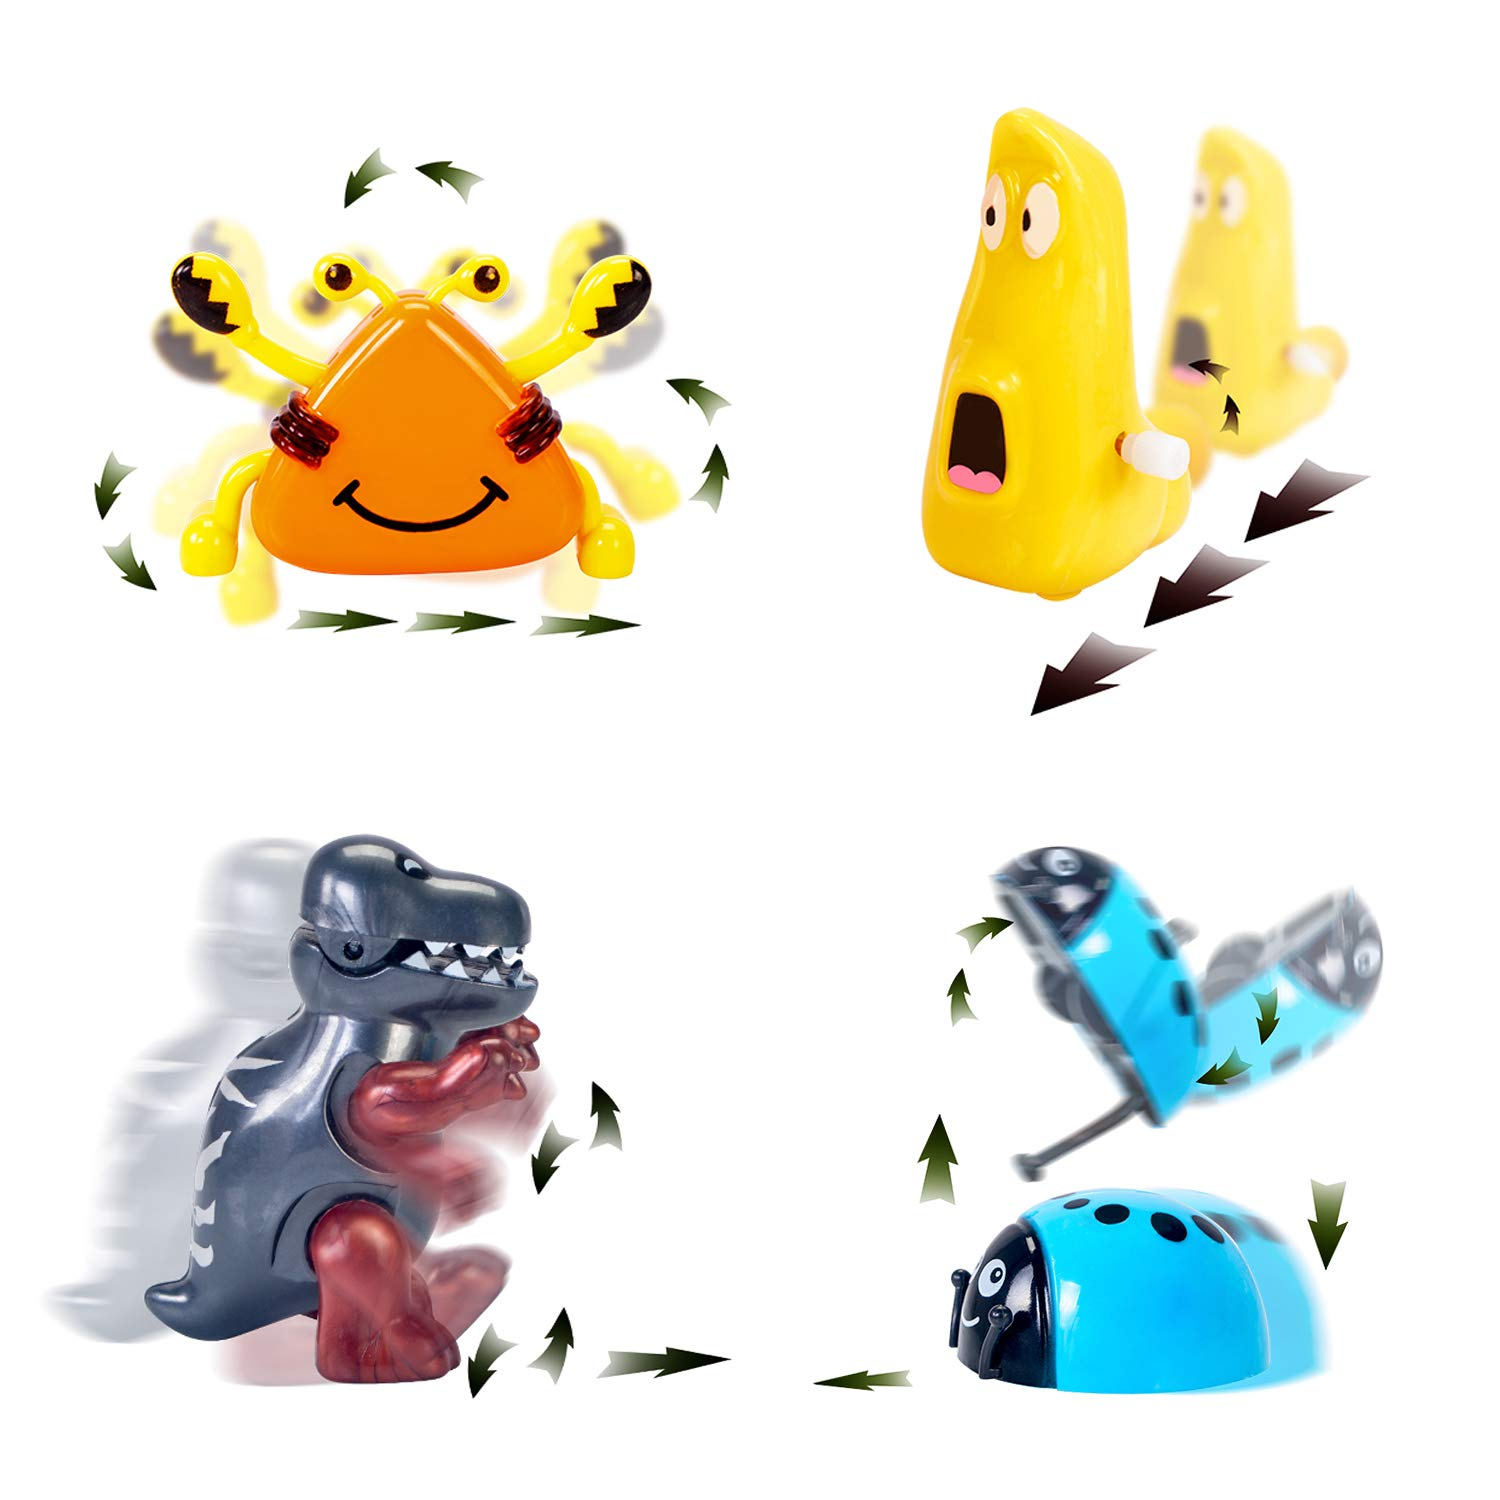 WishaLife Hatchimal Surprise Hatching Egg - Set of 8 Wind Up Animals Toys for Kids Birthday Gifts Party Favor (Includes Mouse, Dog, Dinosaur, Chick, Frog, Ladybug, Crab, Larva, Wooden Hammer) by WishaLife (Image #3)